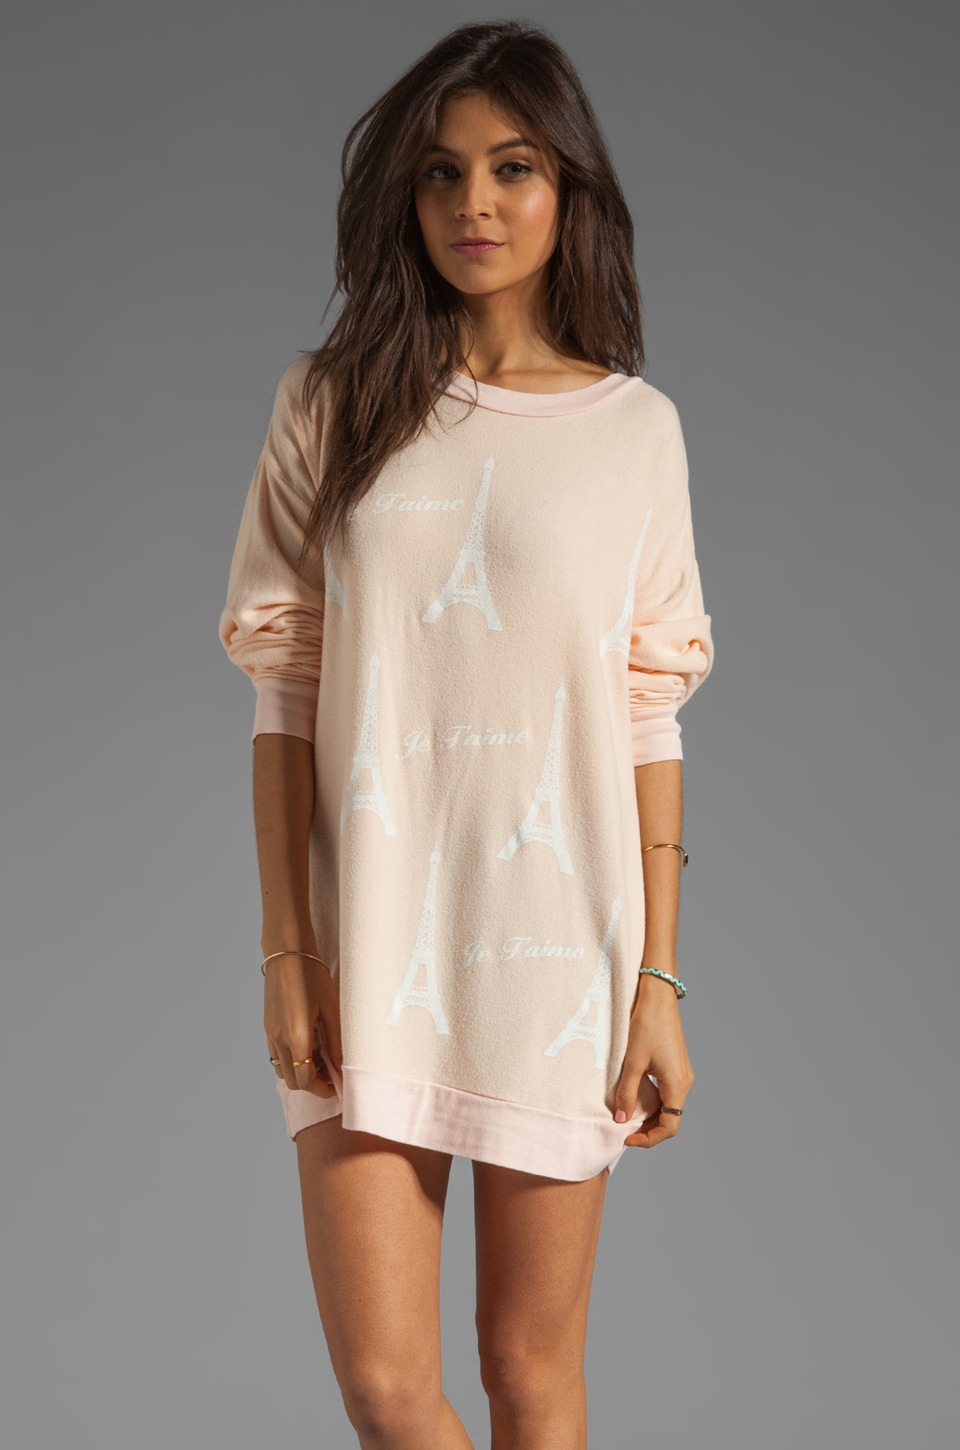 Wildfox Couture Paris Je T'aime Roadtrip Tunic in Dionne